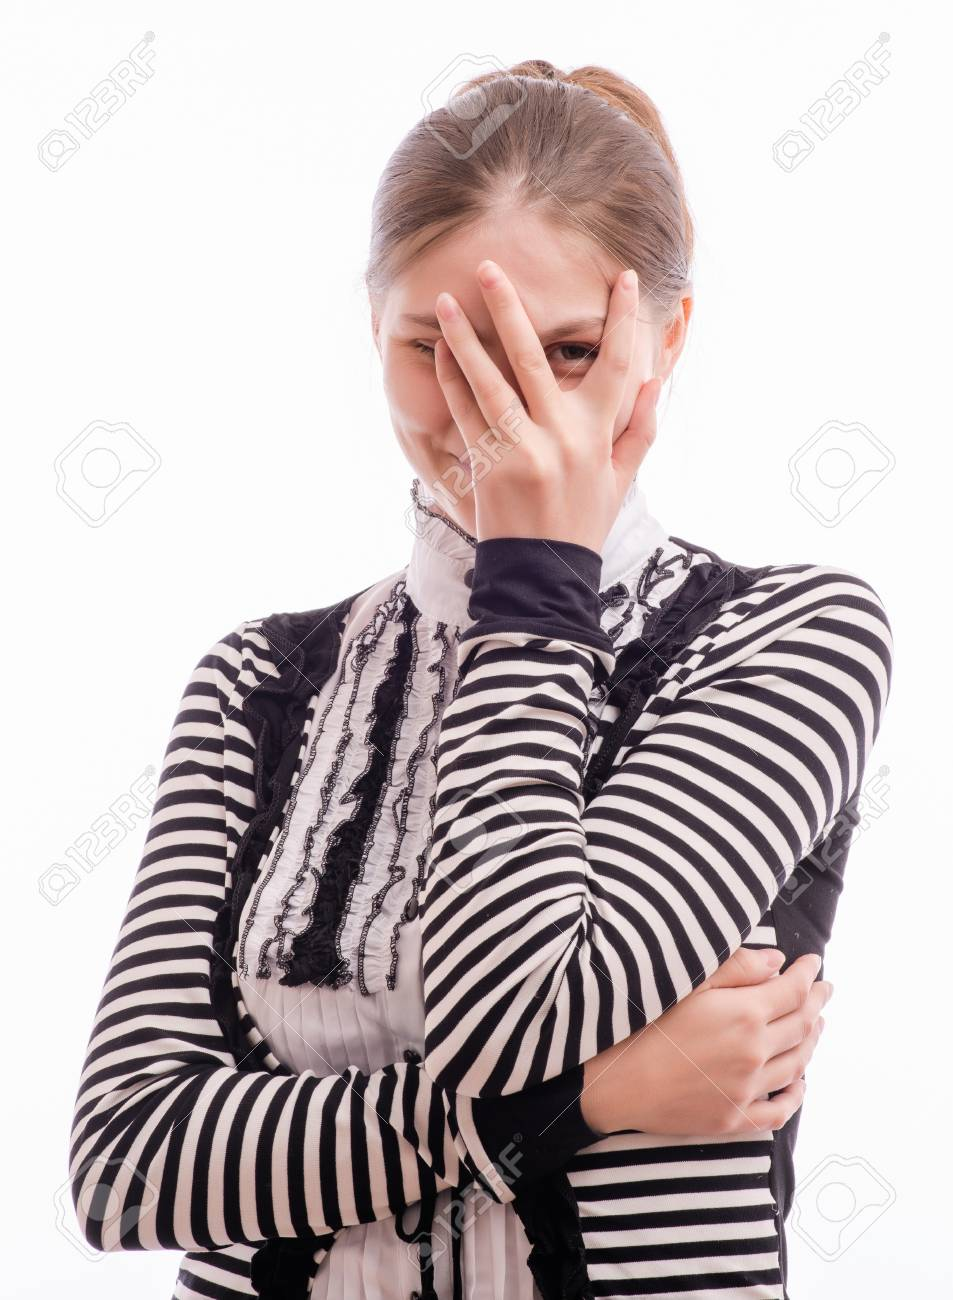 Woman Peaking Through Hands on her face Stock Photo - 18529317